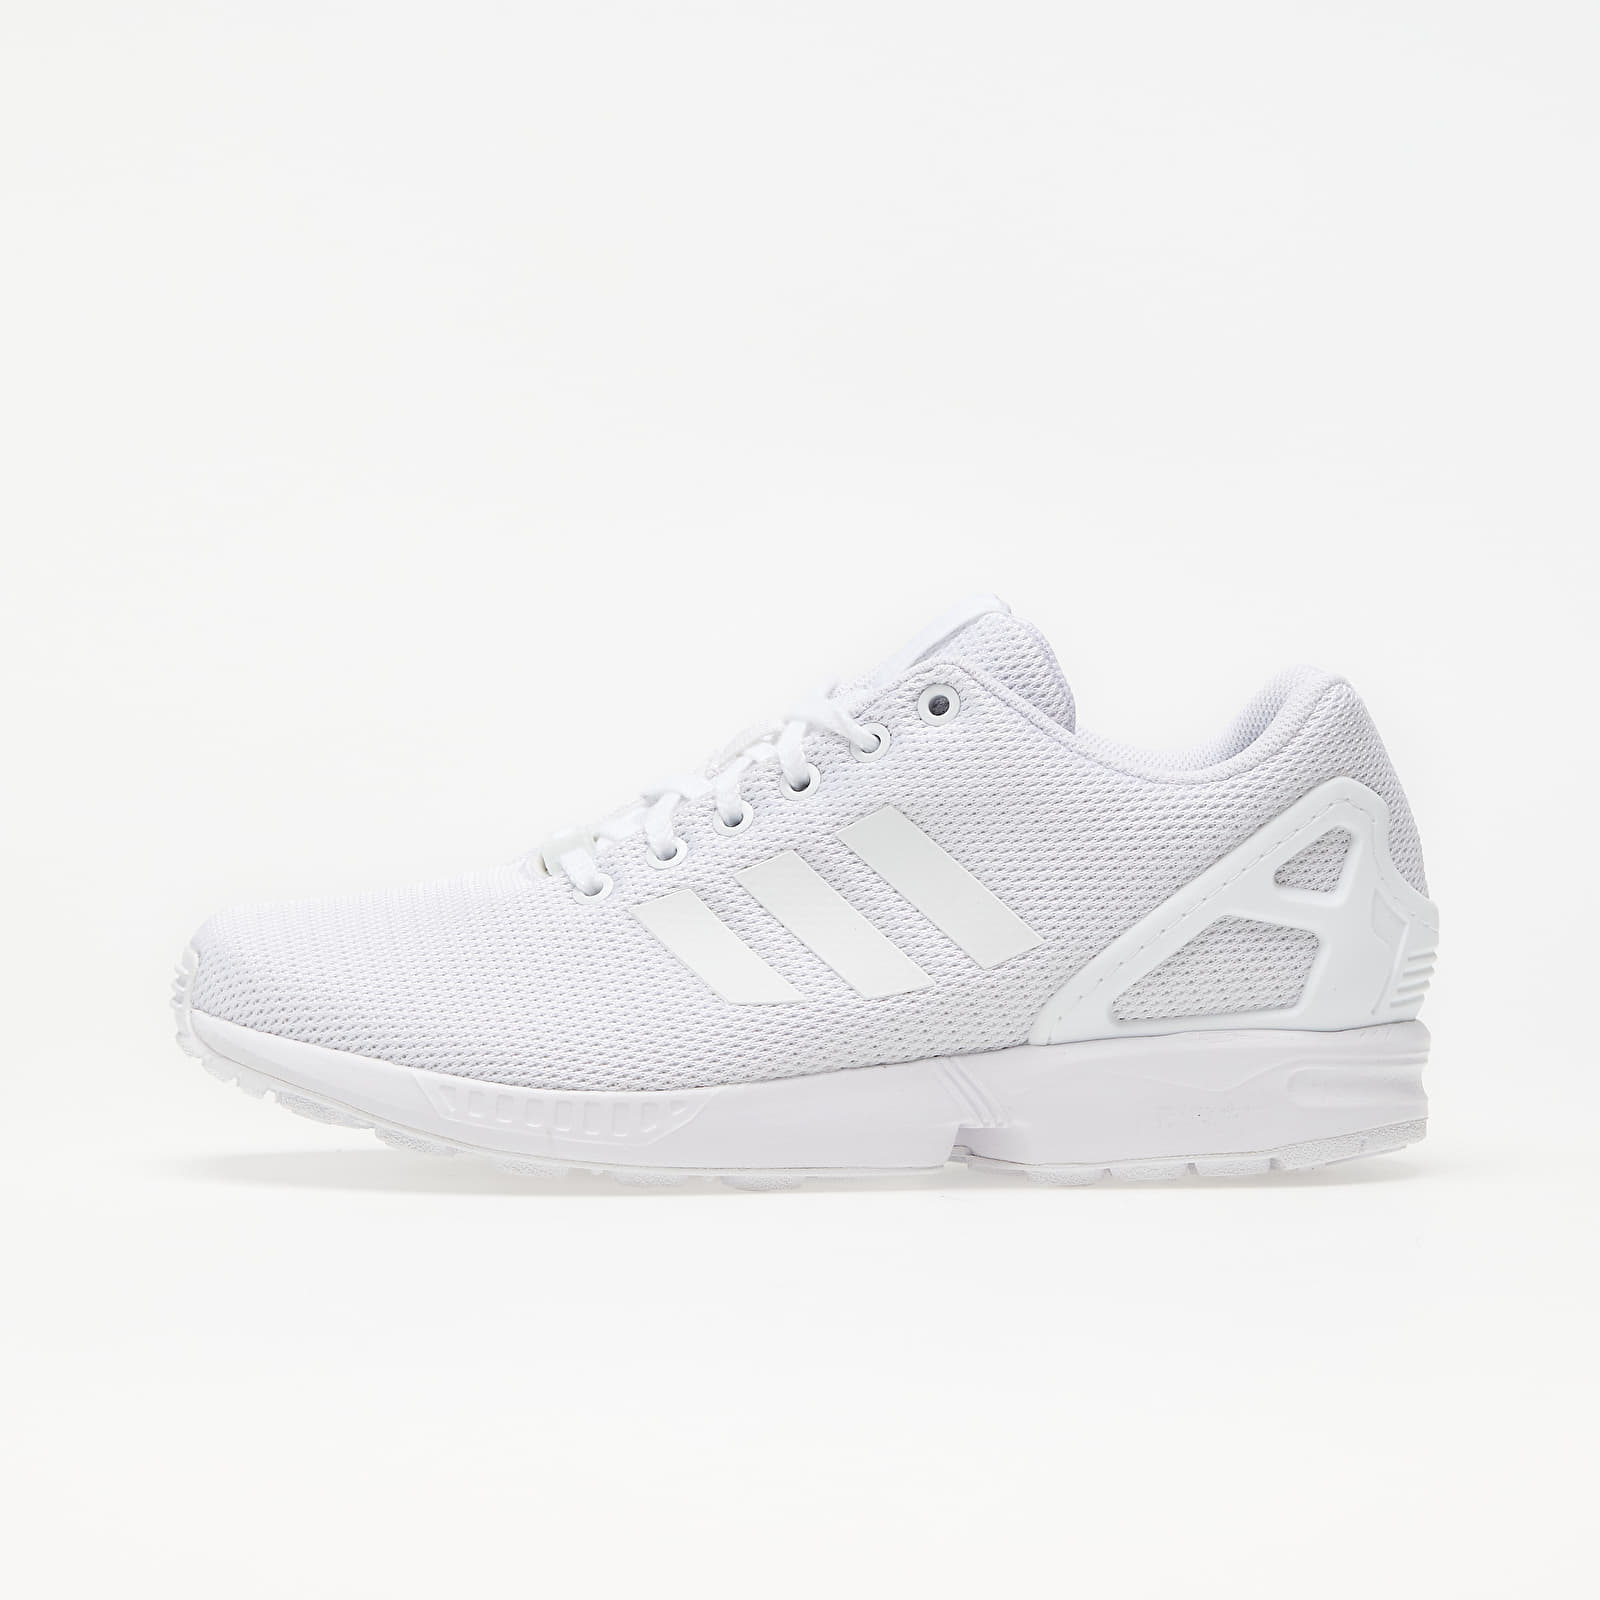 adidas ZX Flux Ftw White/ Ftw White/ Cool Grey EUR 42